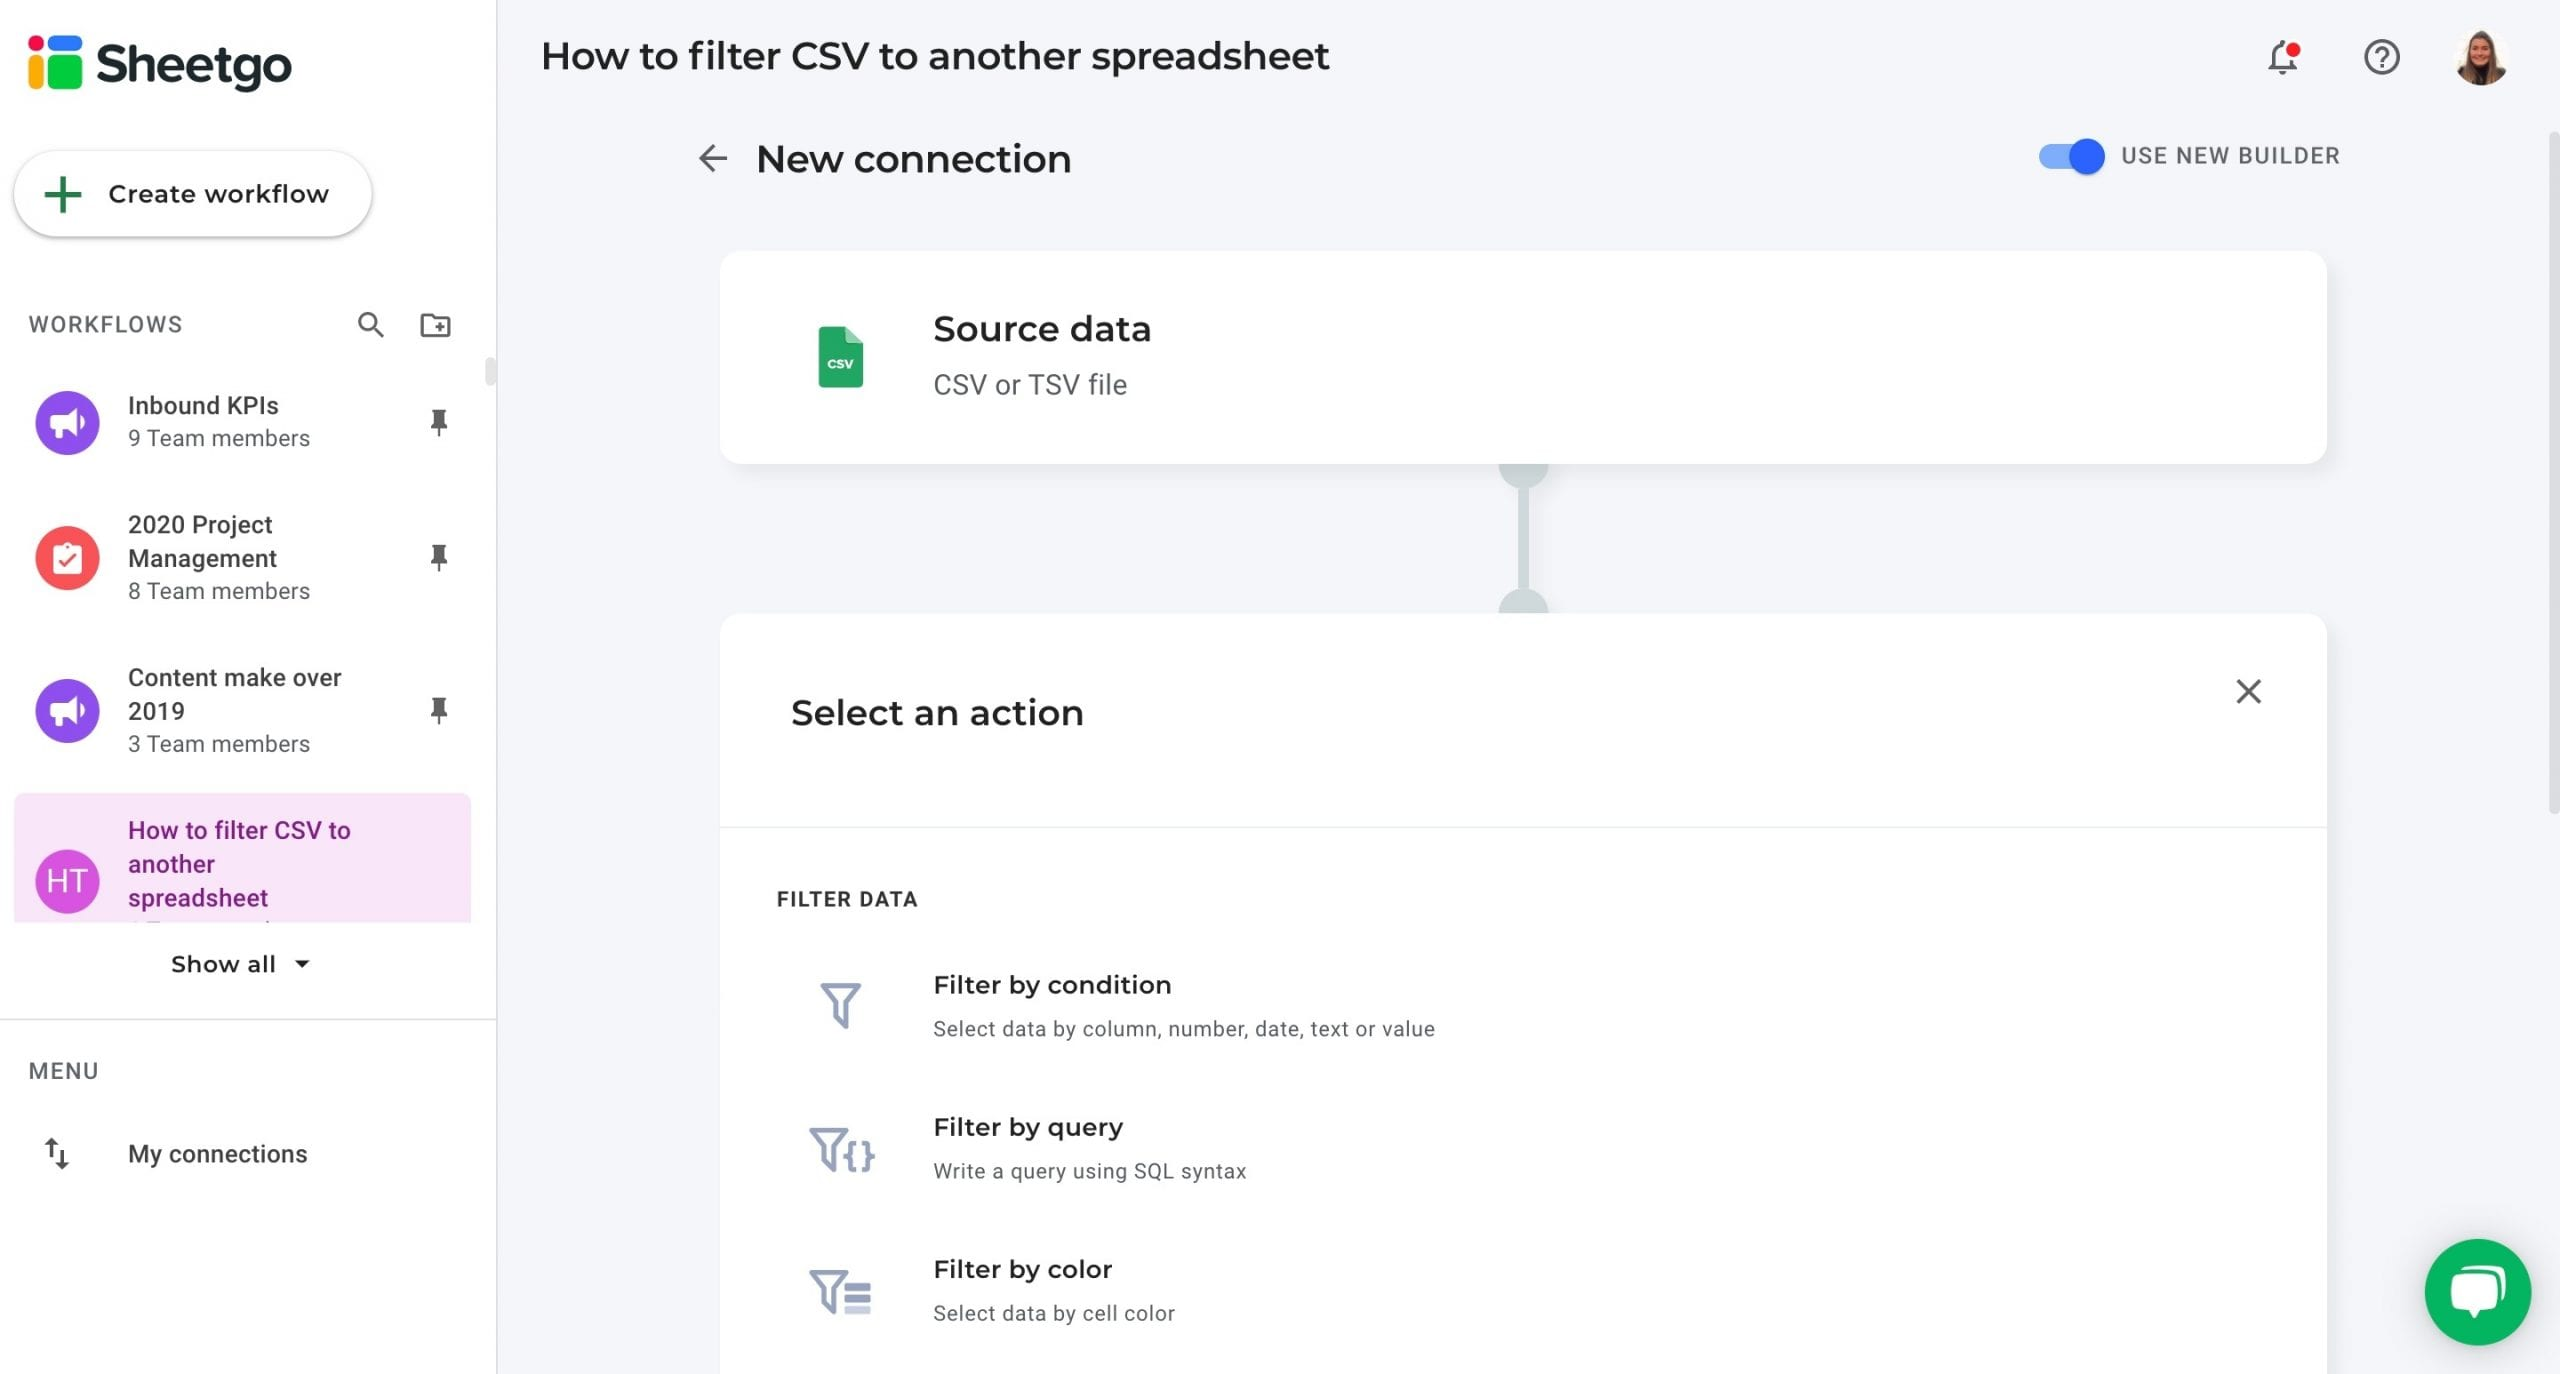 Filter CSV filter by condition